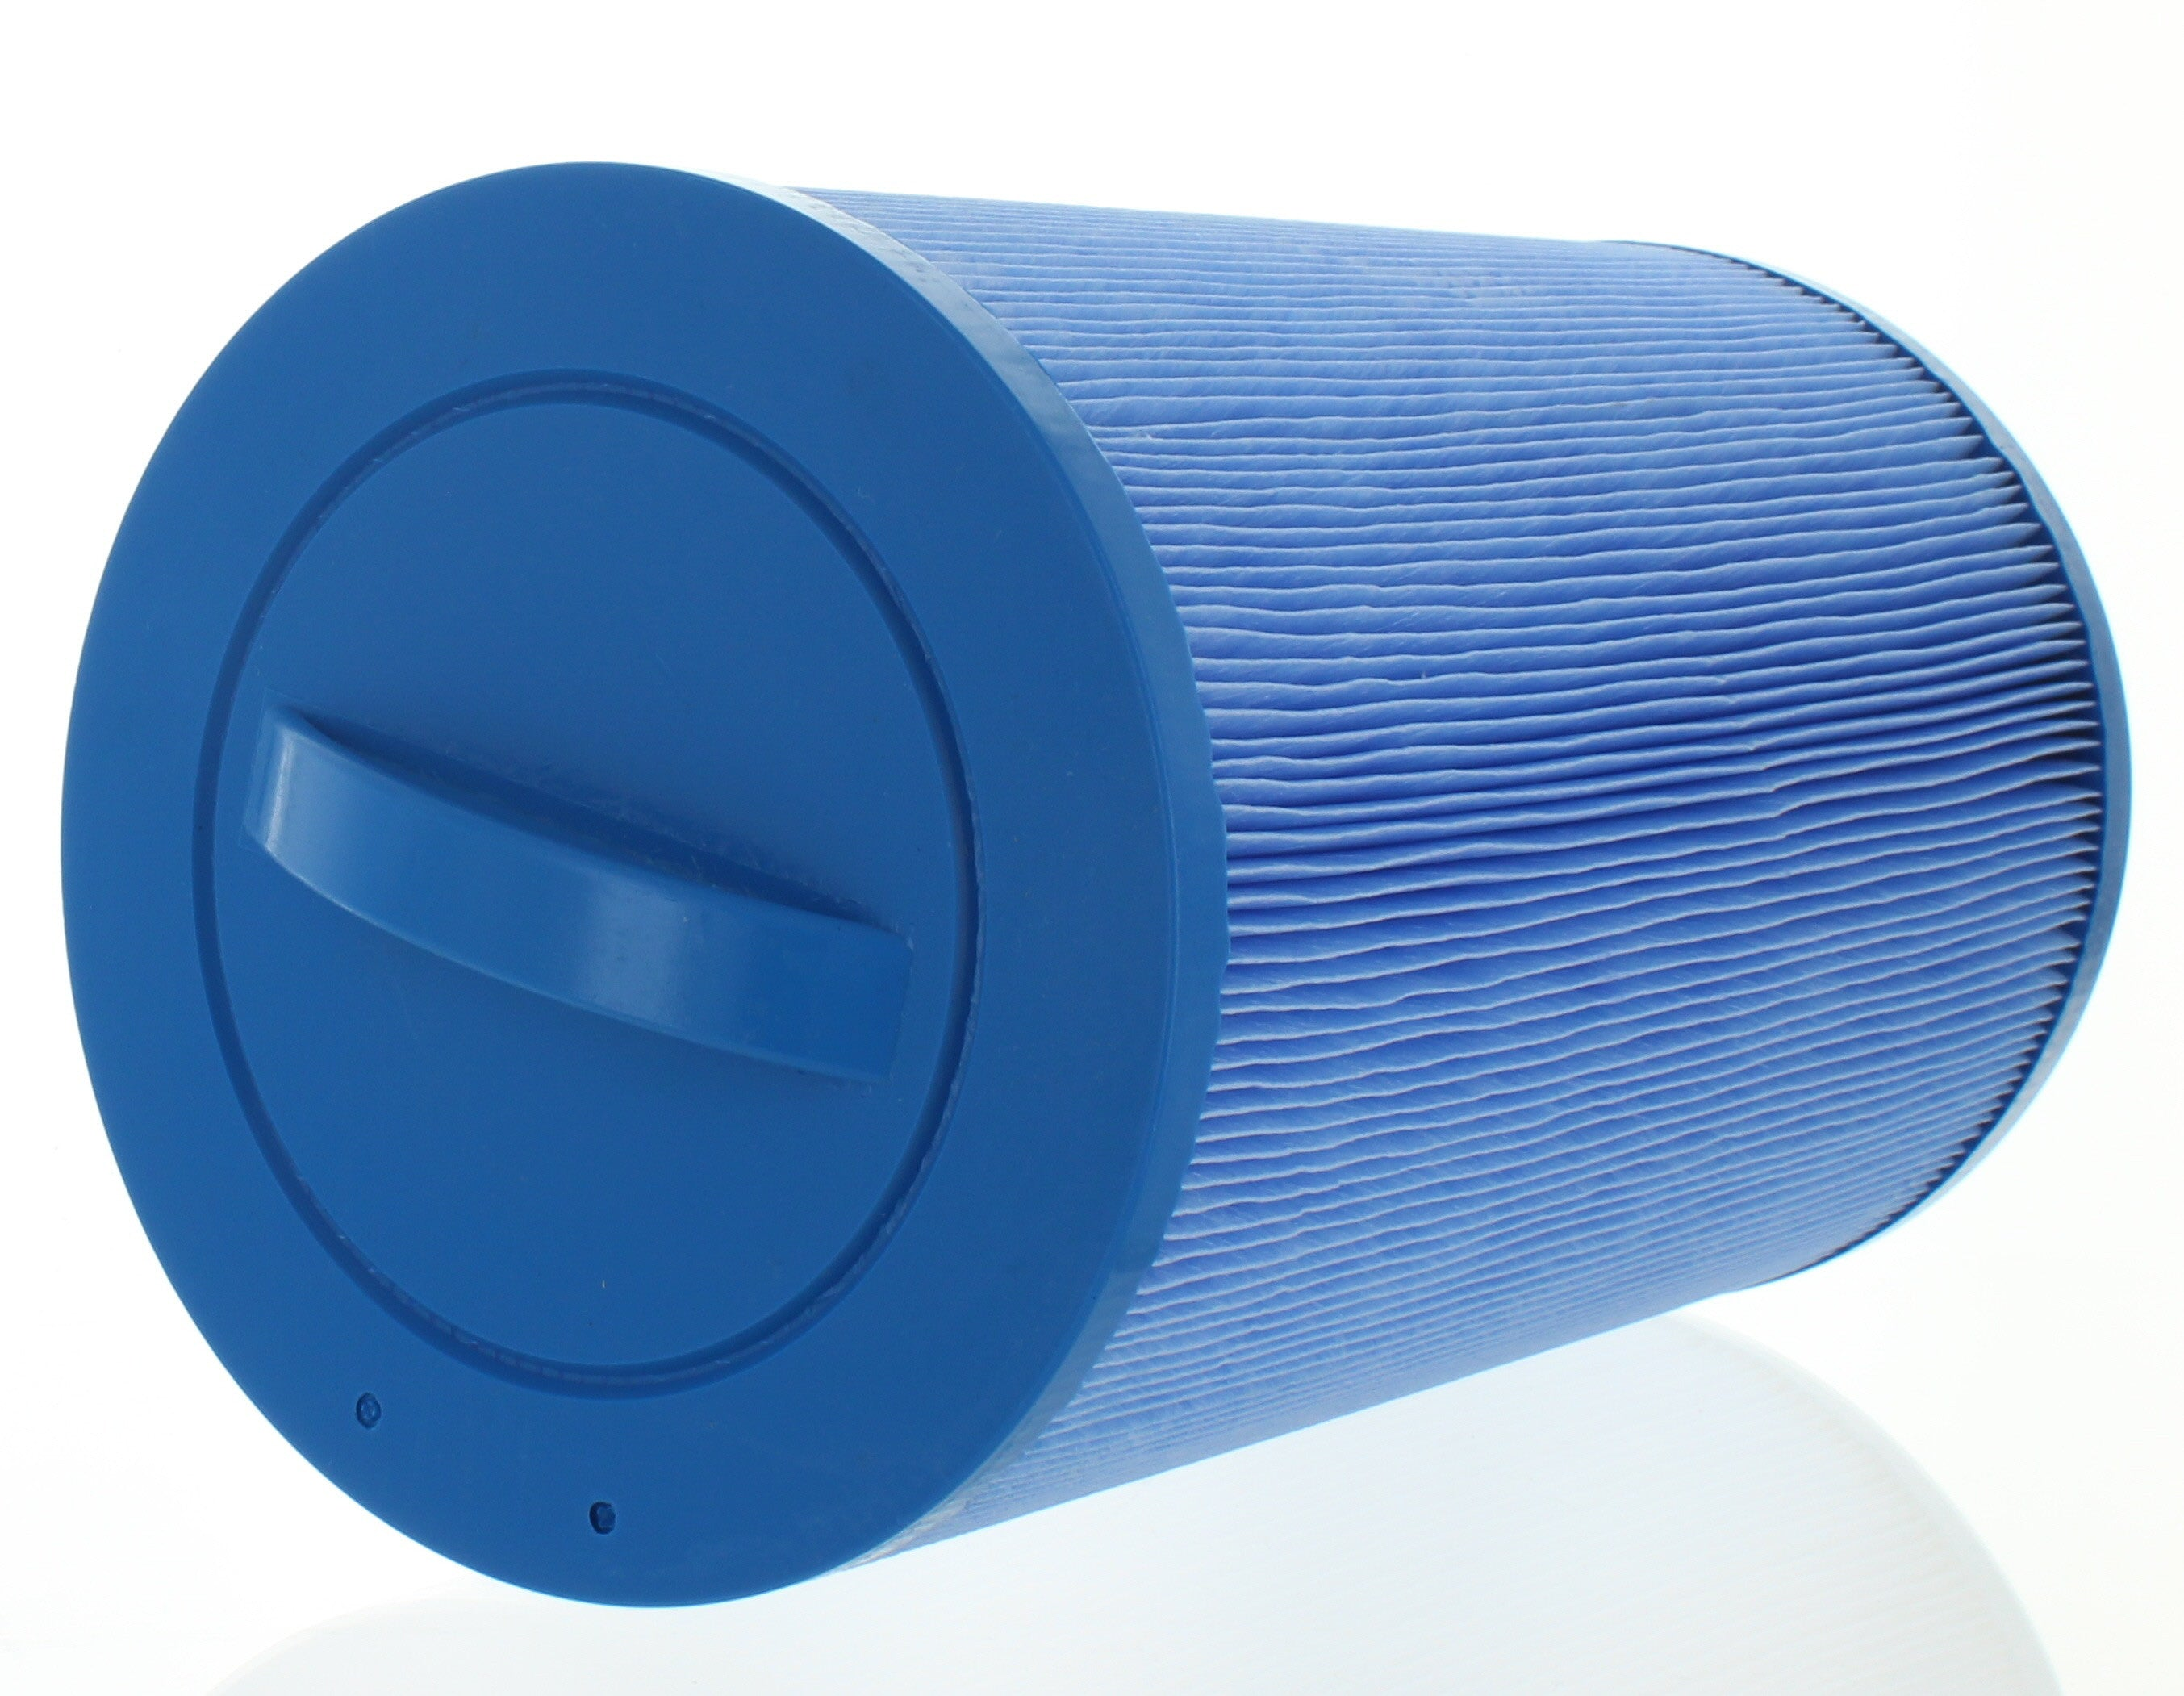 Replaces Pleatco PMA40L-F2M-M • Antimicrobial Hot Tub & Spa Filter Cartridge-Filter Cartridge-FilterDeal.com